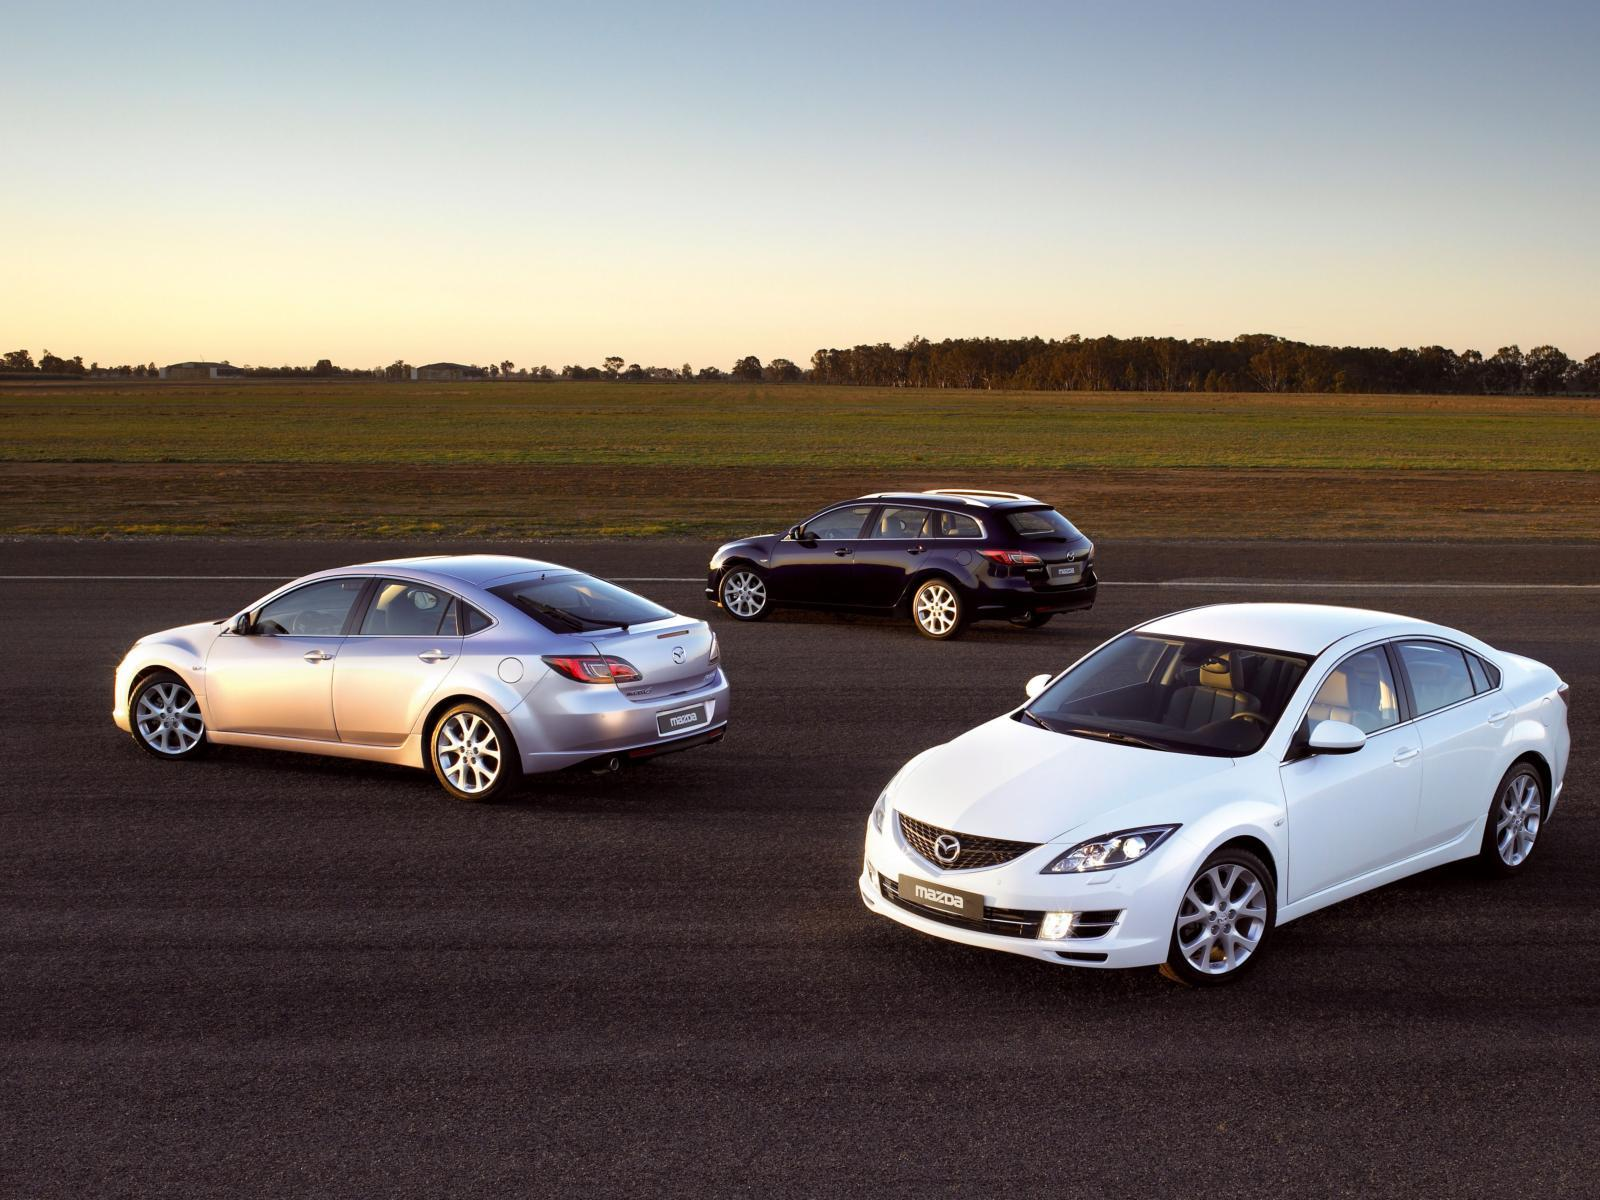 Mazda 6 wallpapers - Mazda 6 Forums : Mazda 6 Forum / Mazda Atenza ...